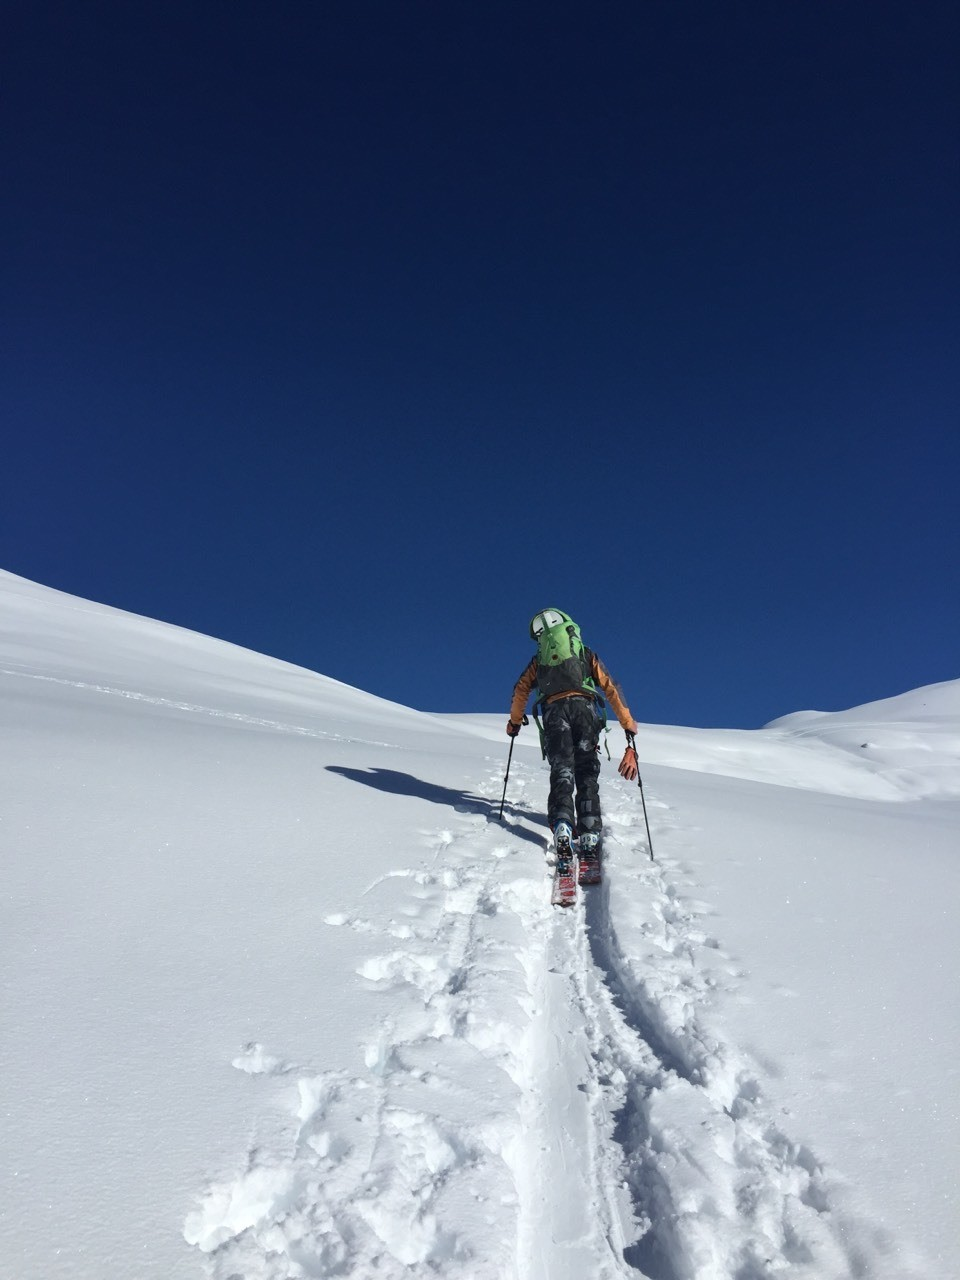 Ski touring is the best exercise!